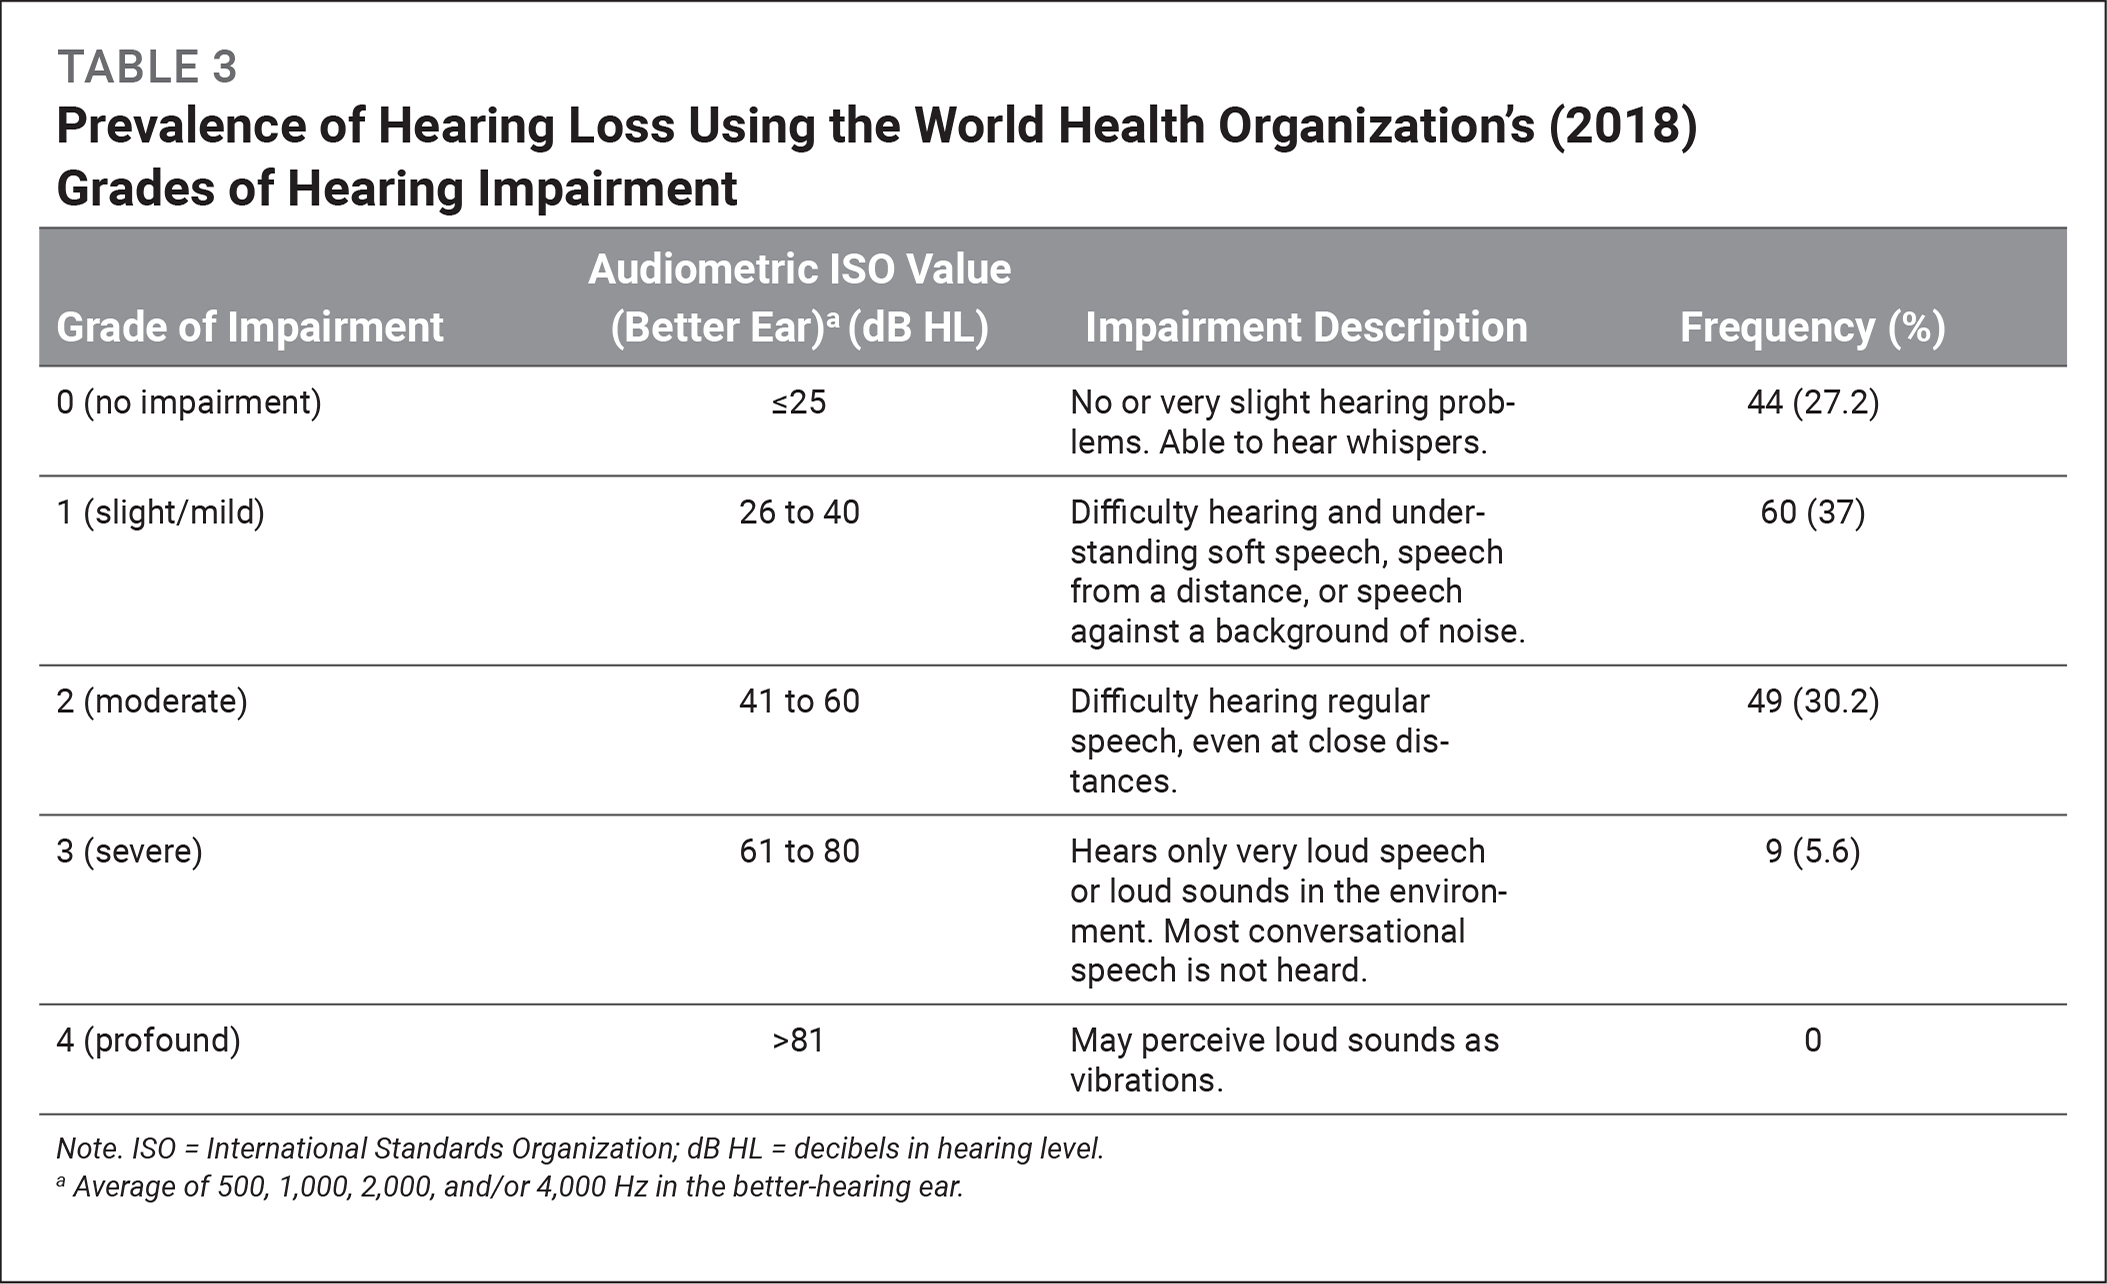 Prevalence of Hearing Loss Using the World Health Organization's (2018) Grades of Hearing Impairment